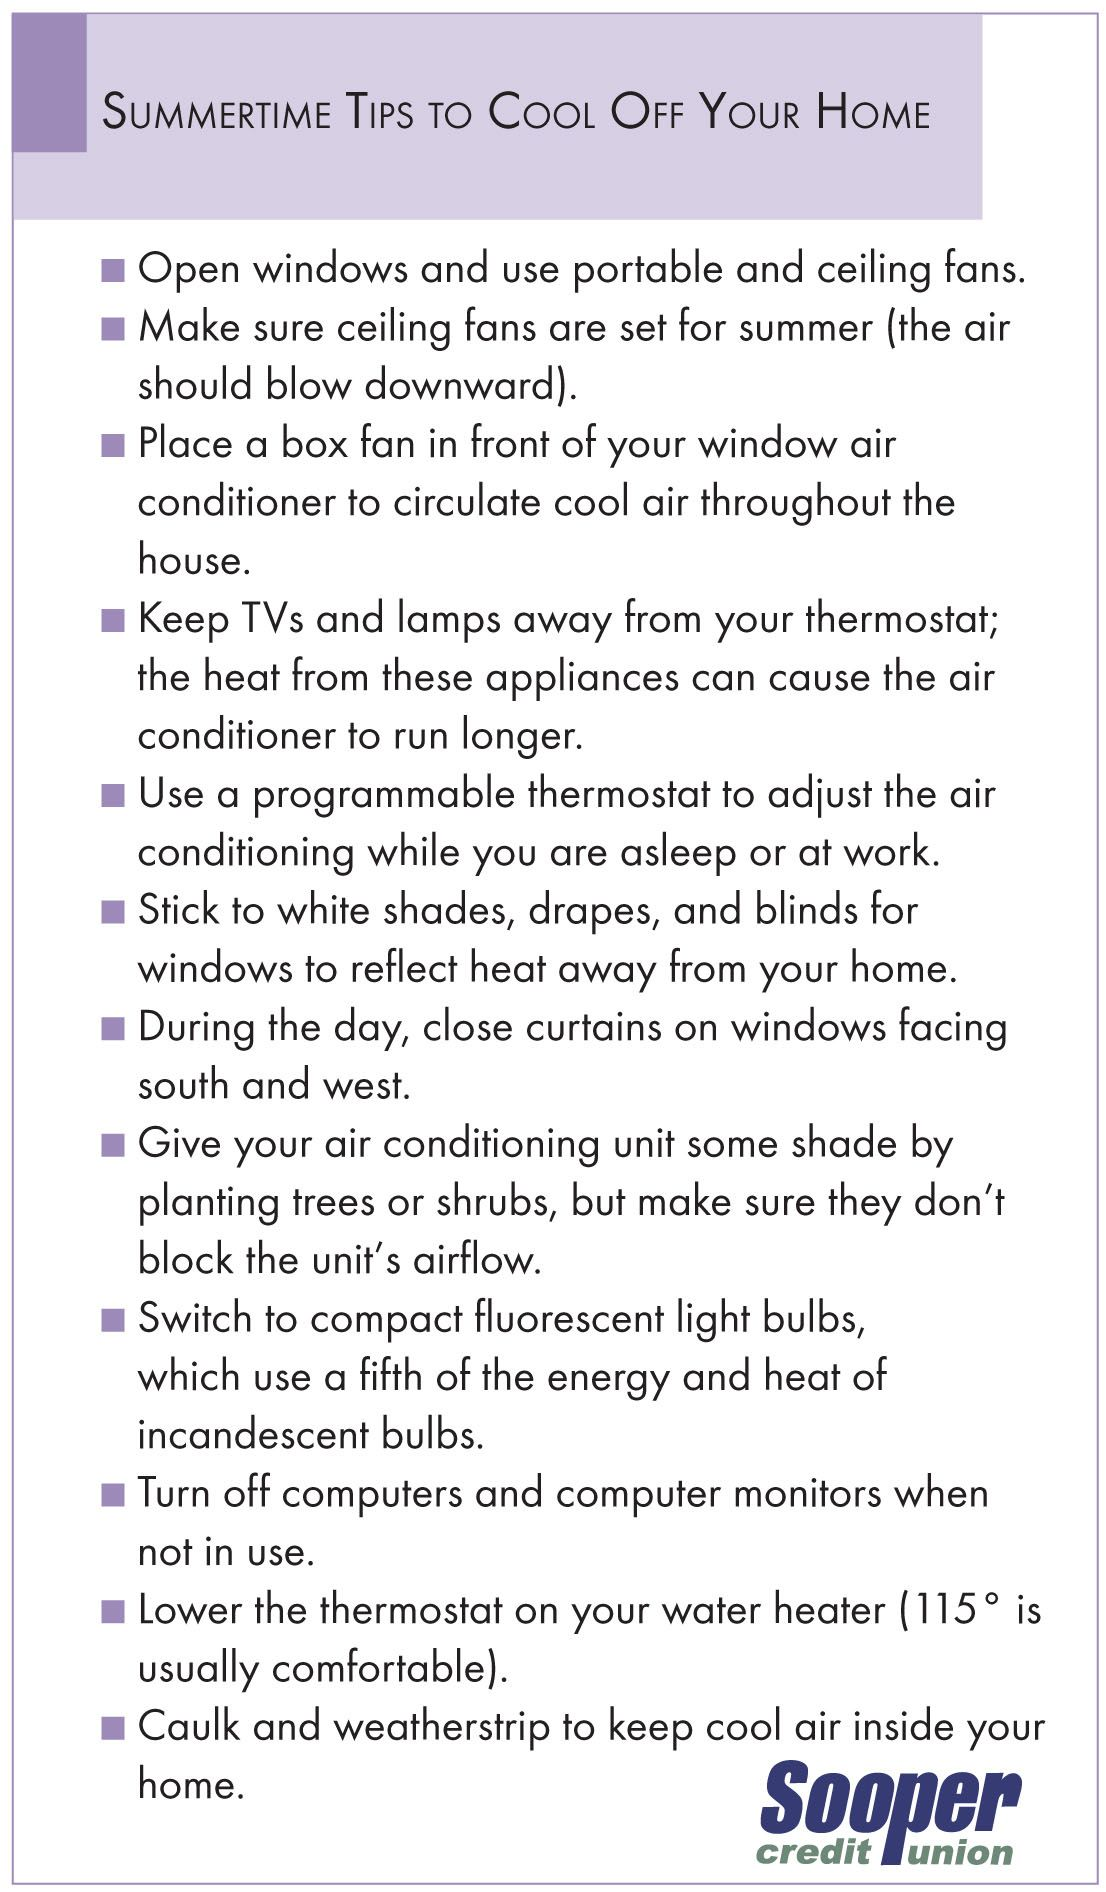 Summertime tips to cool your home! Financial wellness